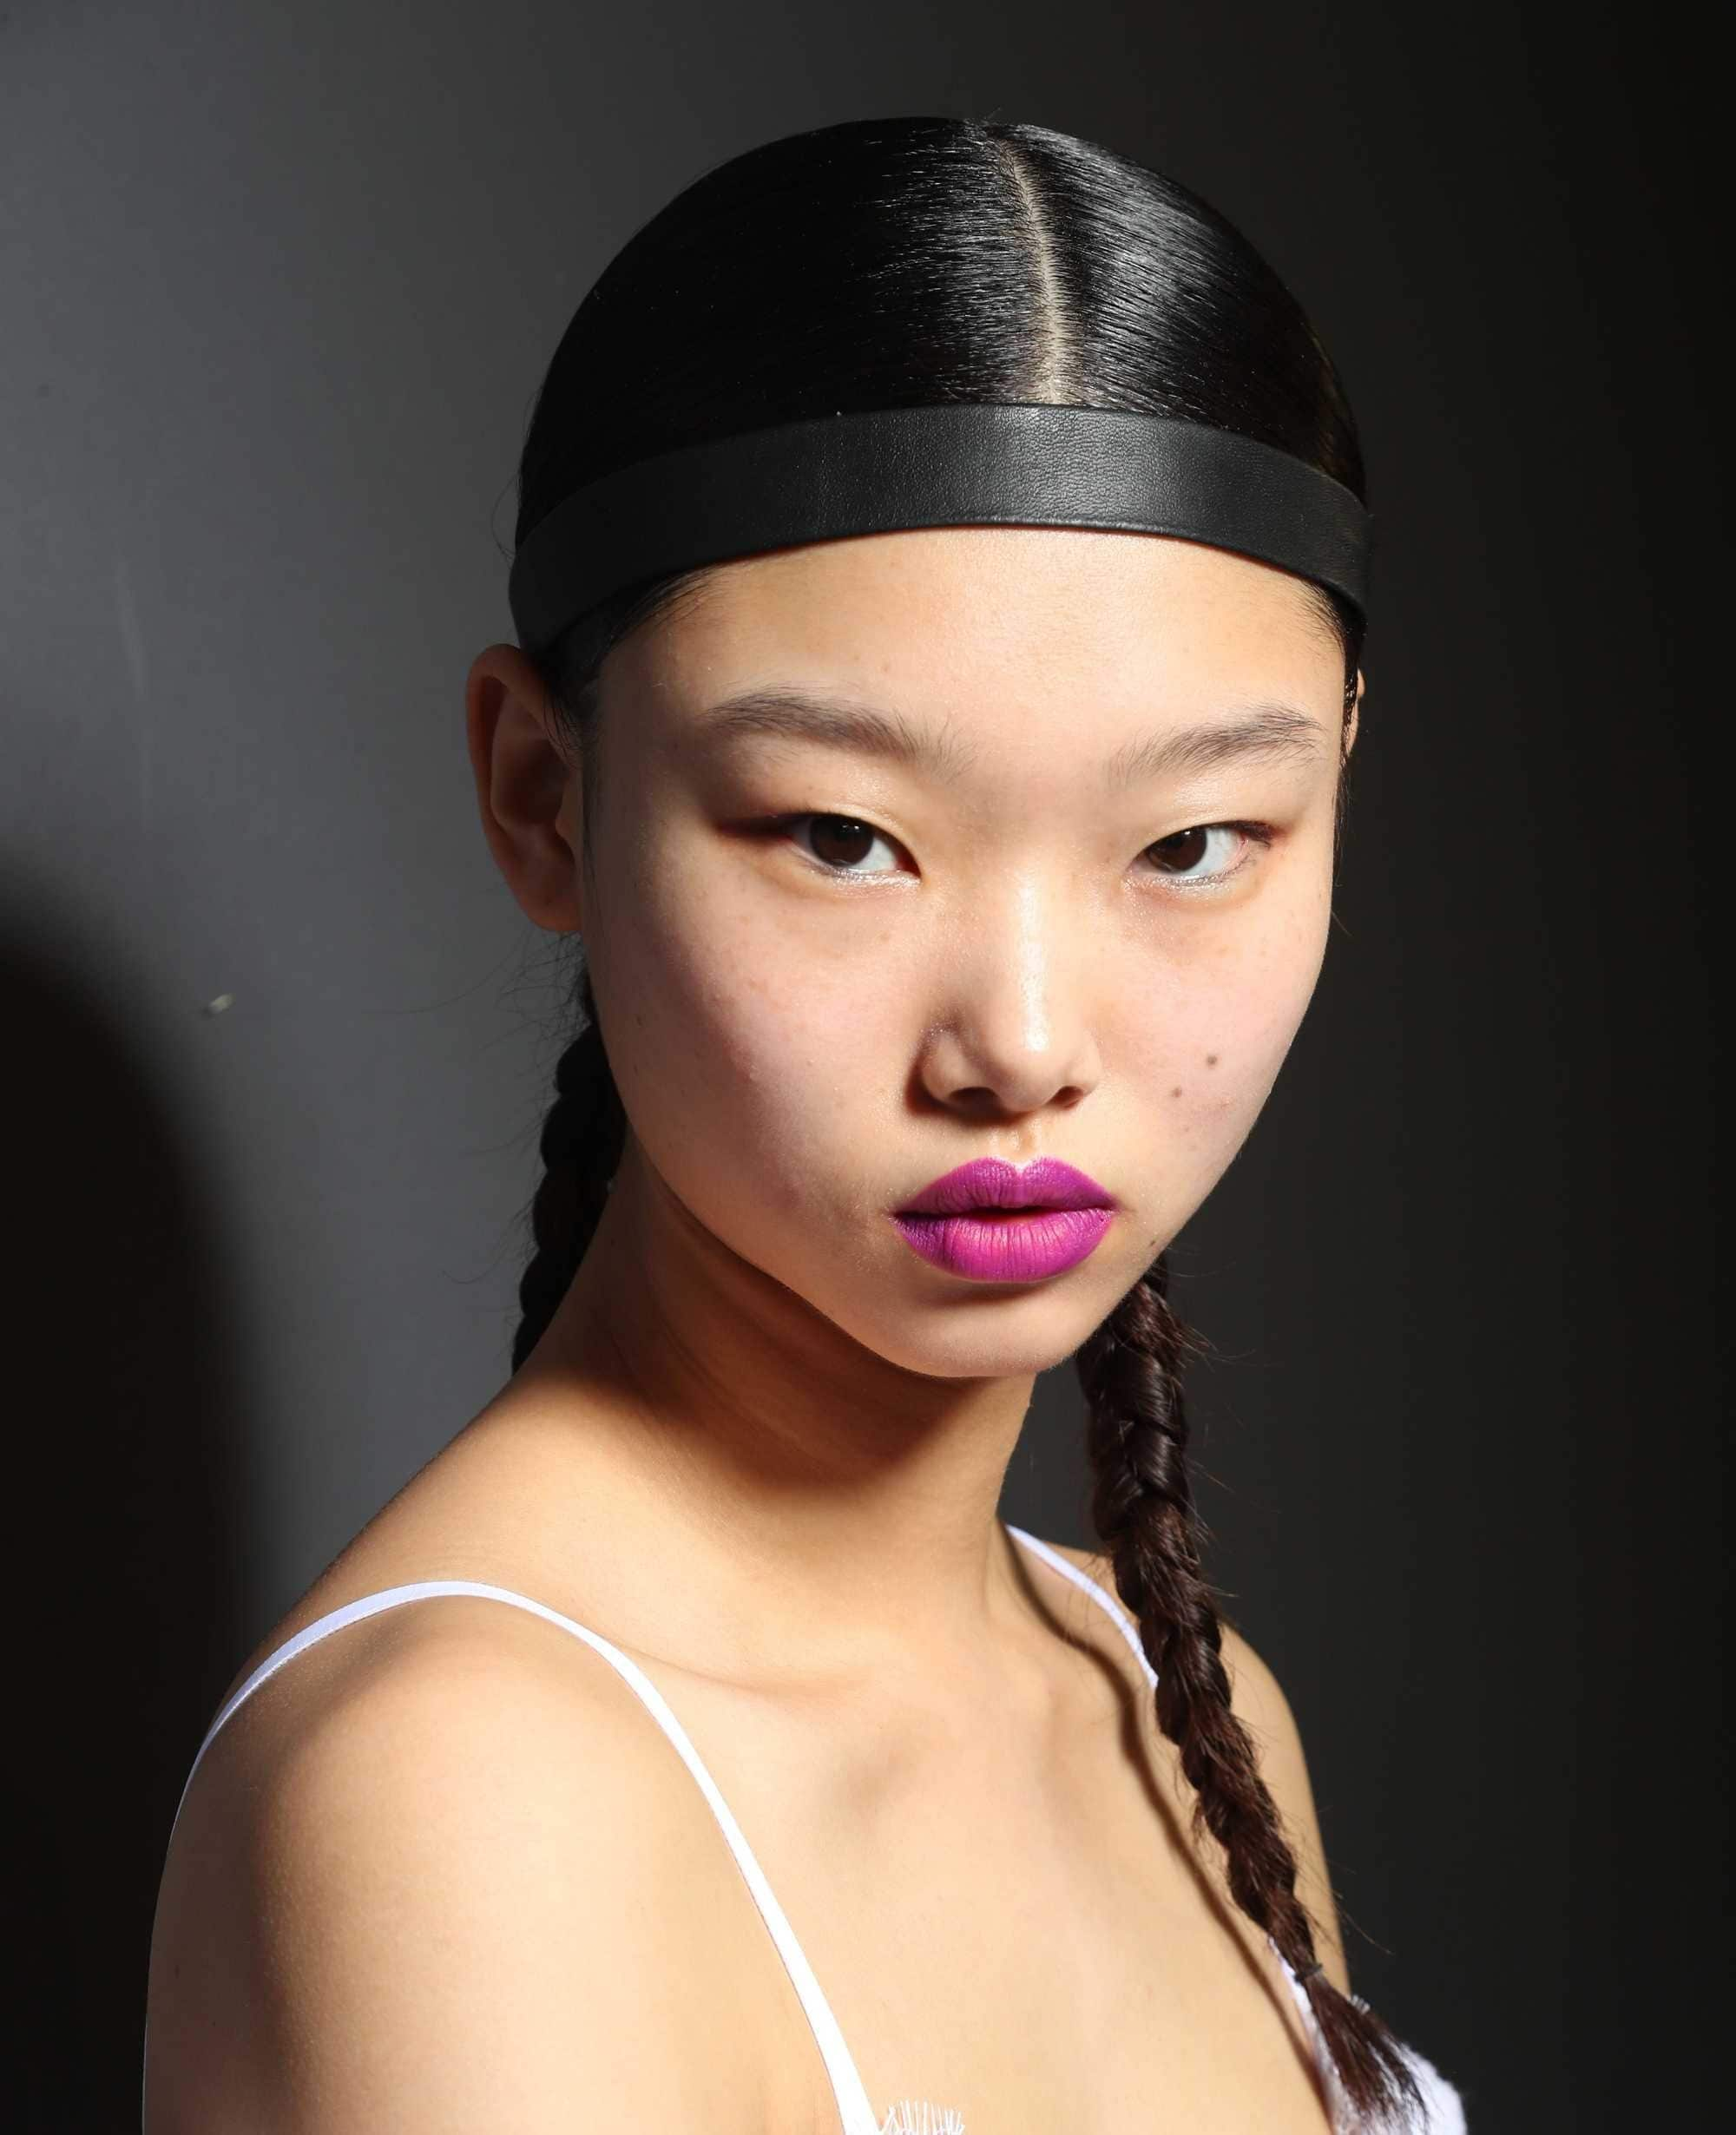 wrap-how-to-style-hair-accessories-headbands-hairstyles-ways-to-wear-black-braids-pigtails.jpg